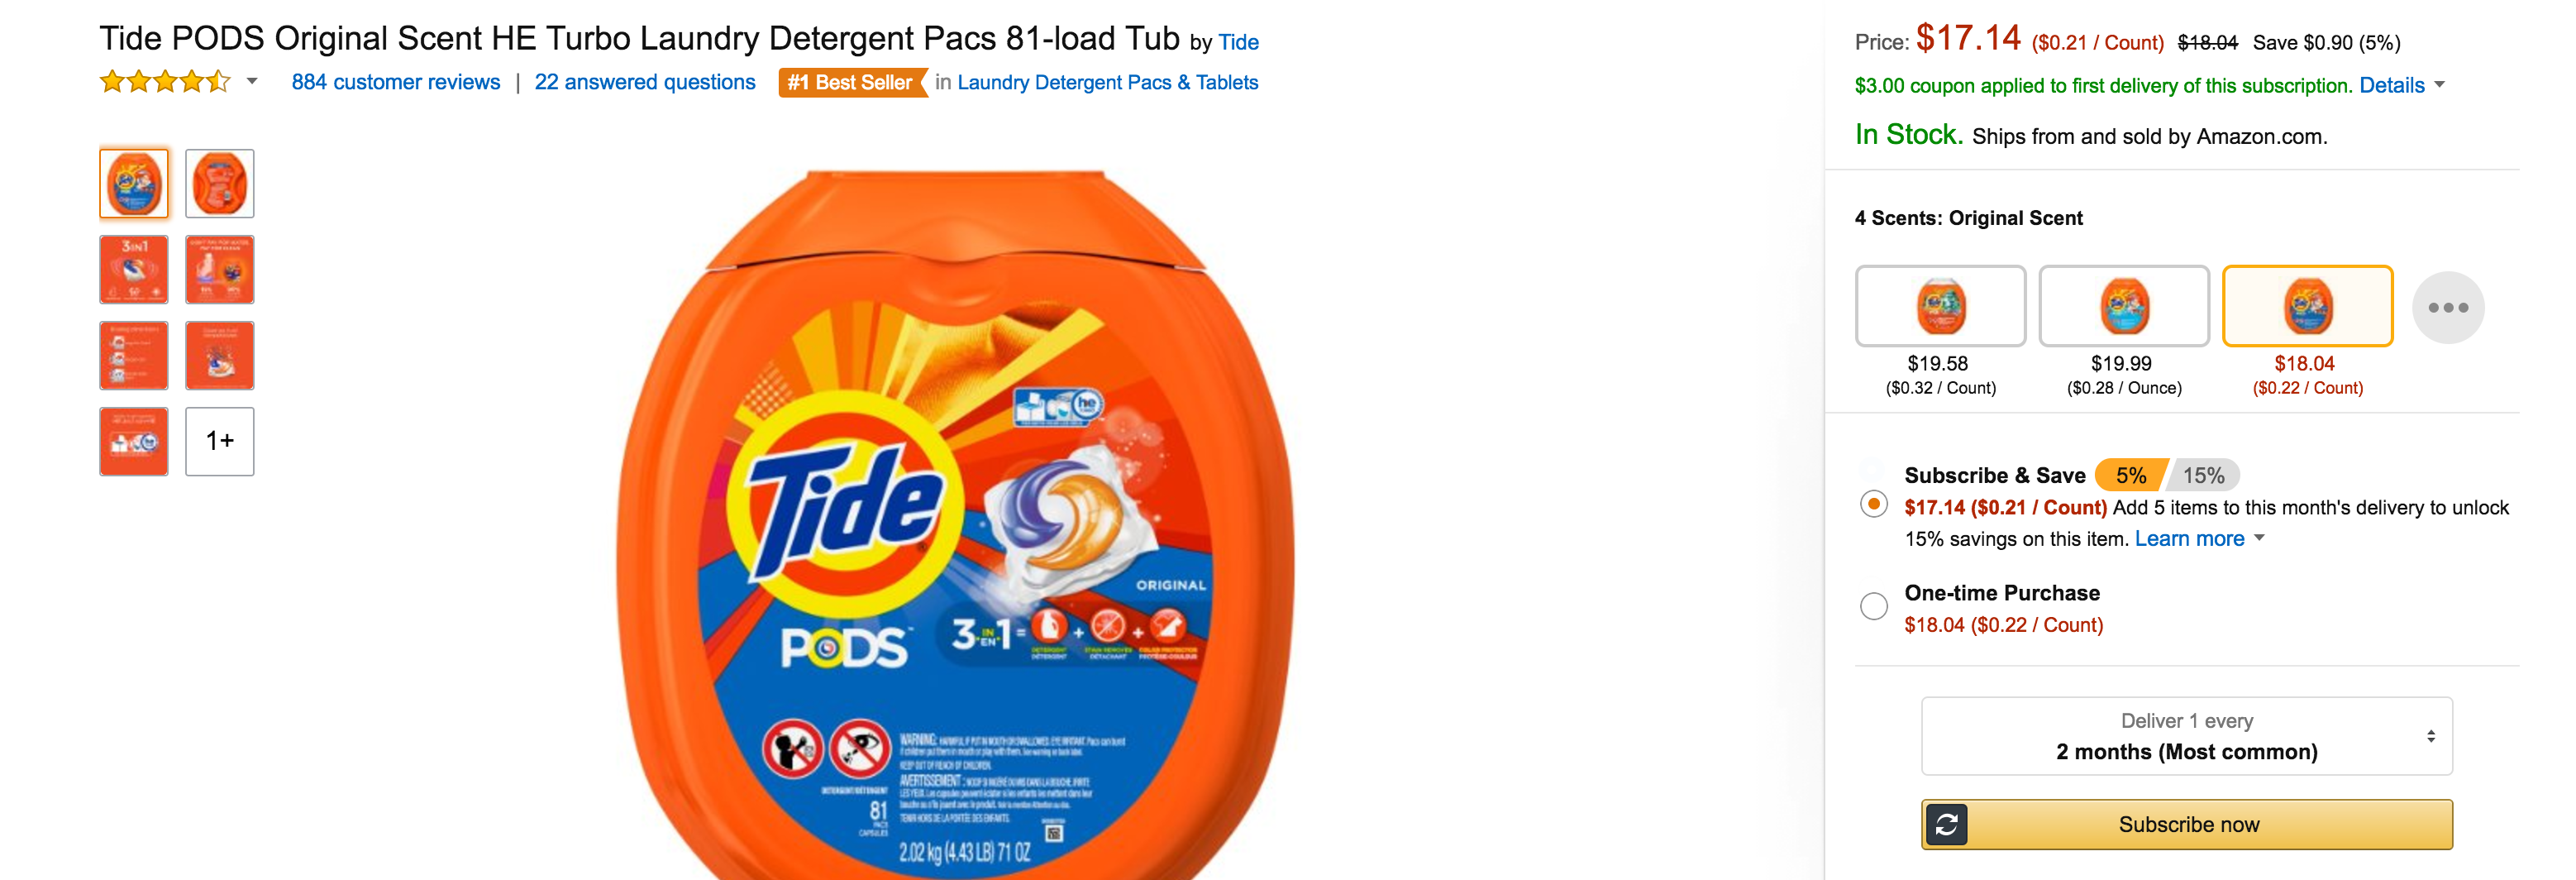 tide-pods-original-scent-he-turbo-laundry-detergent-5